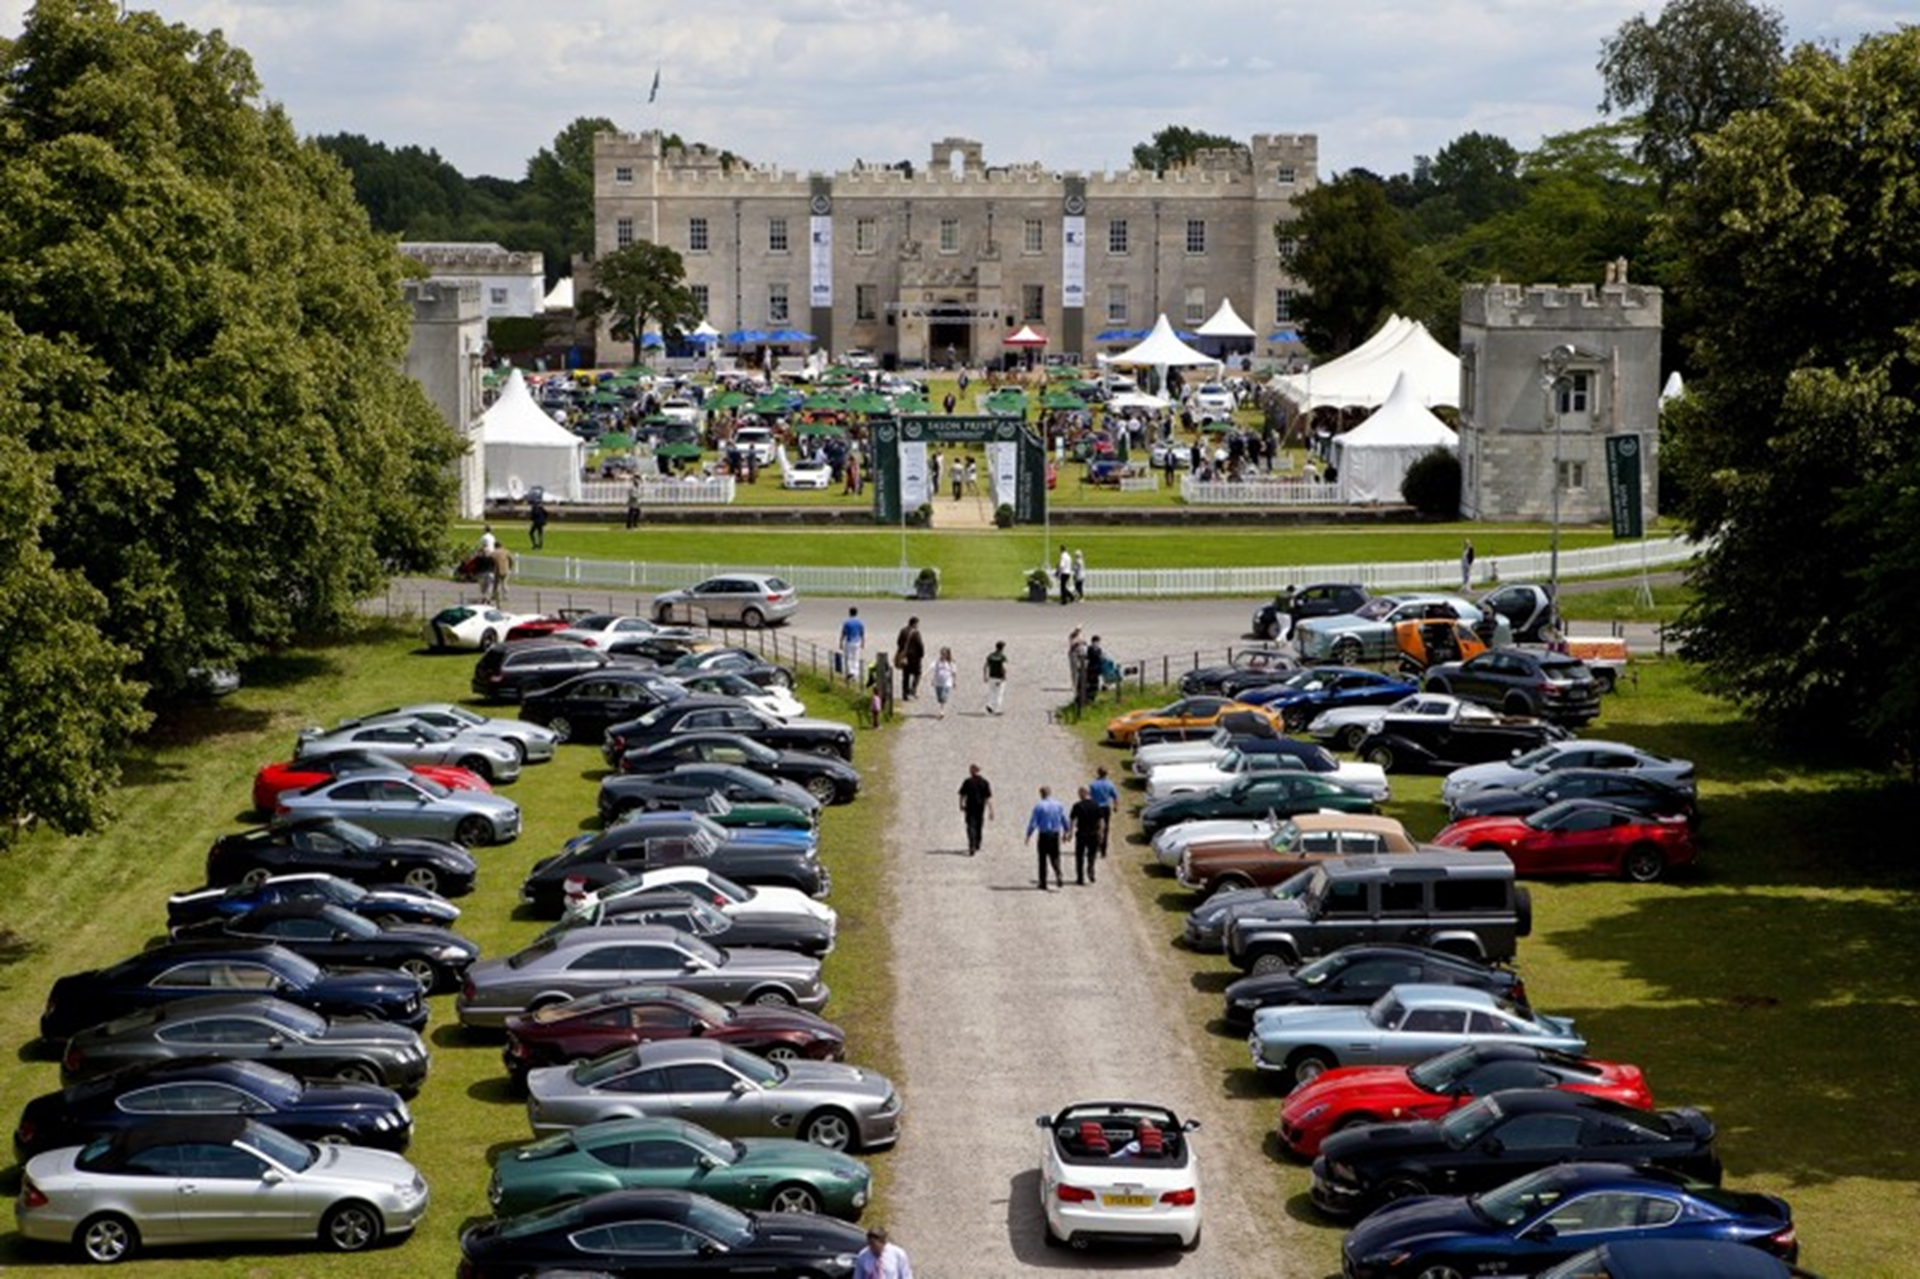 Salon Privé 2012: New dates announced